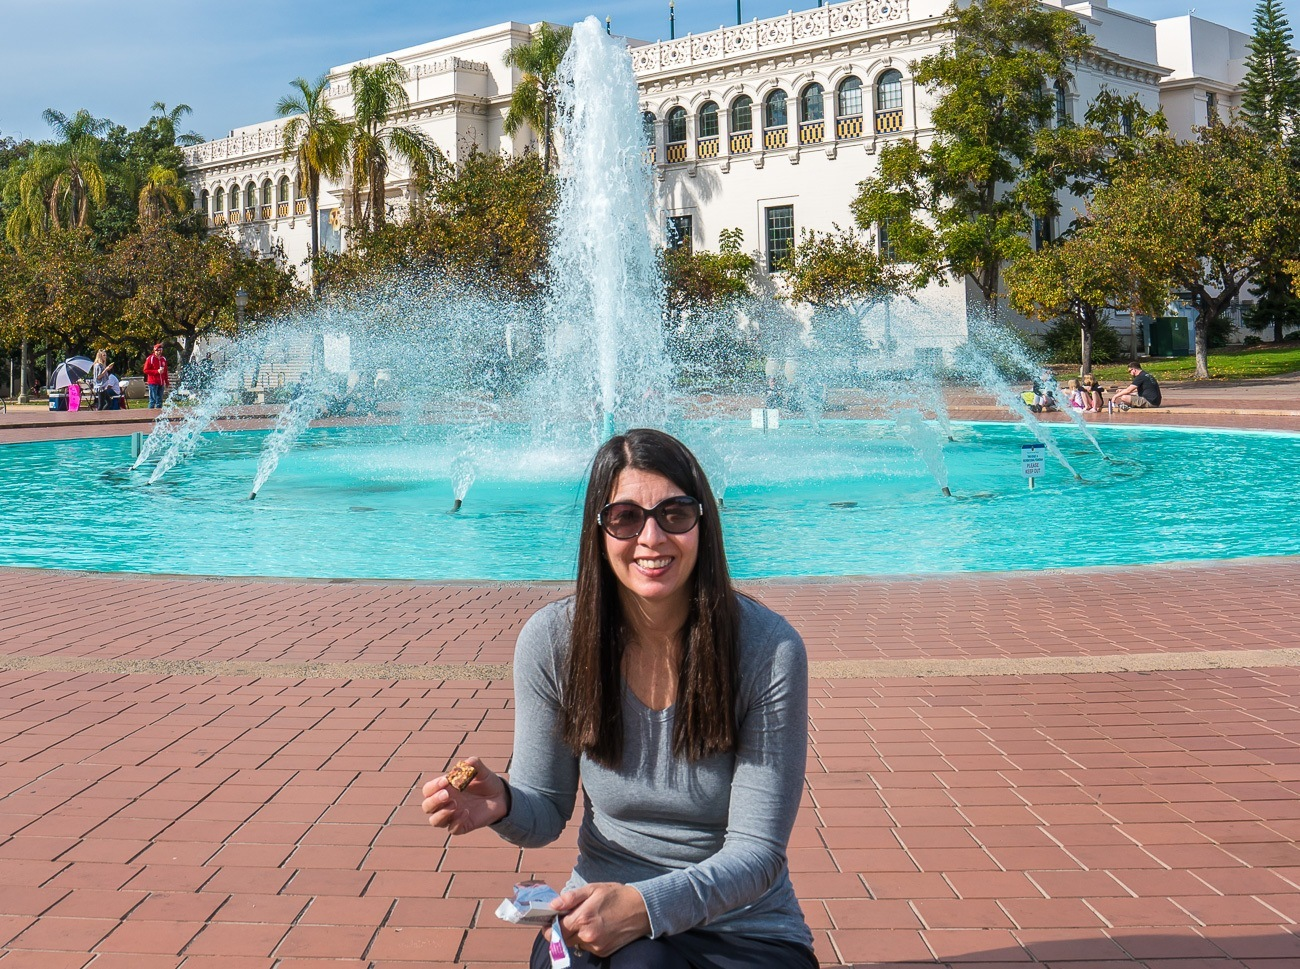 A goodnessknows snack square break in front of the Balboa Park fountain.